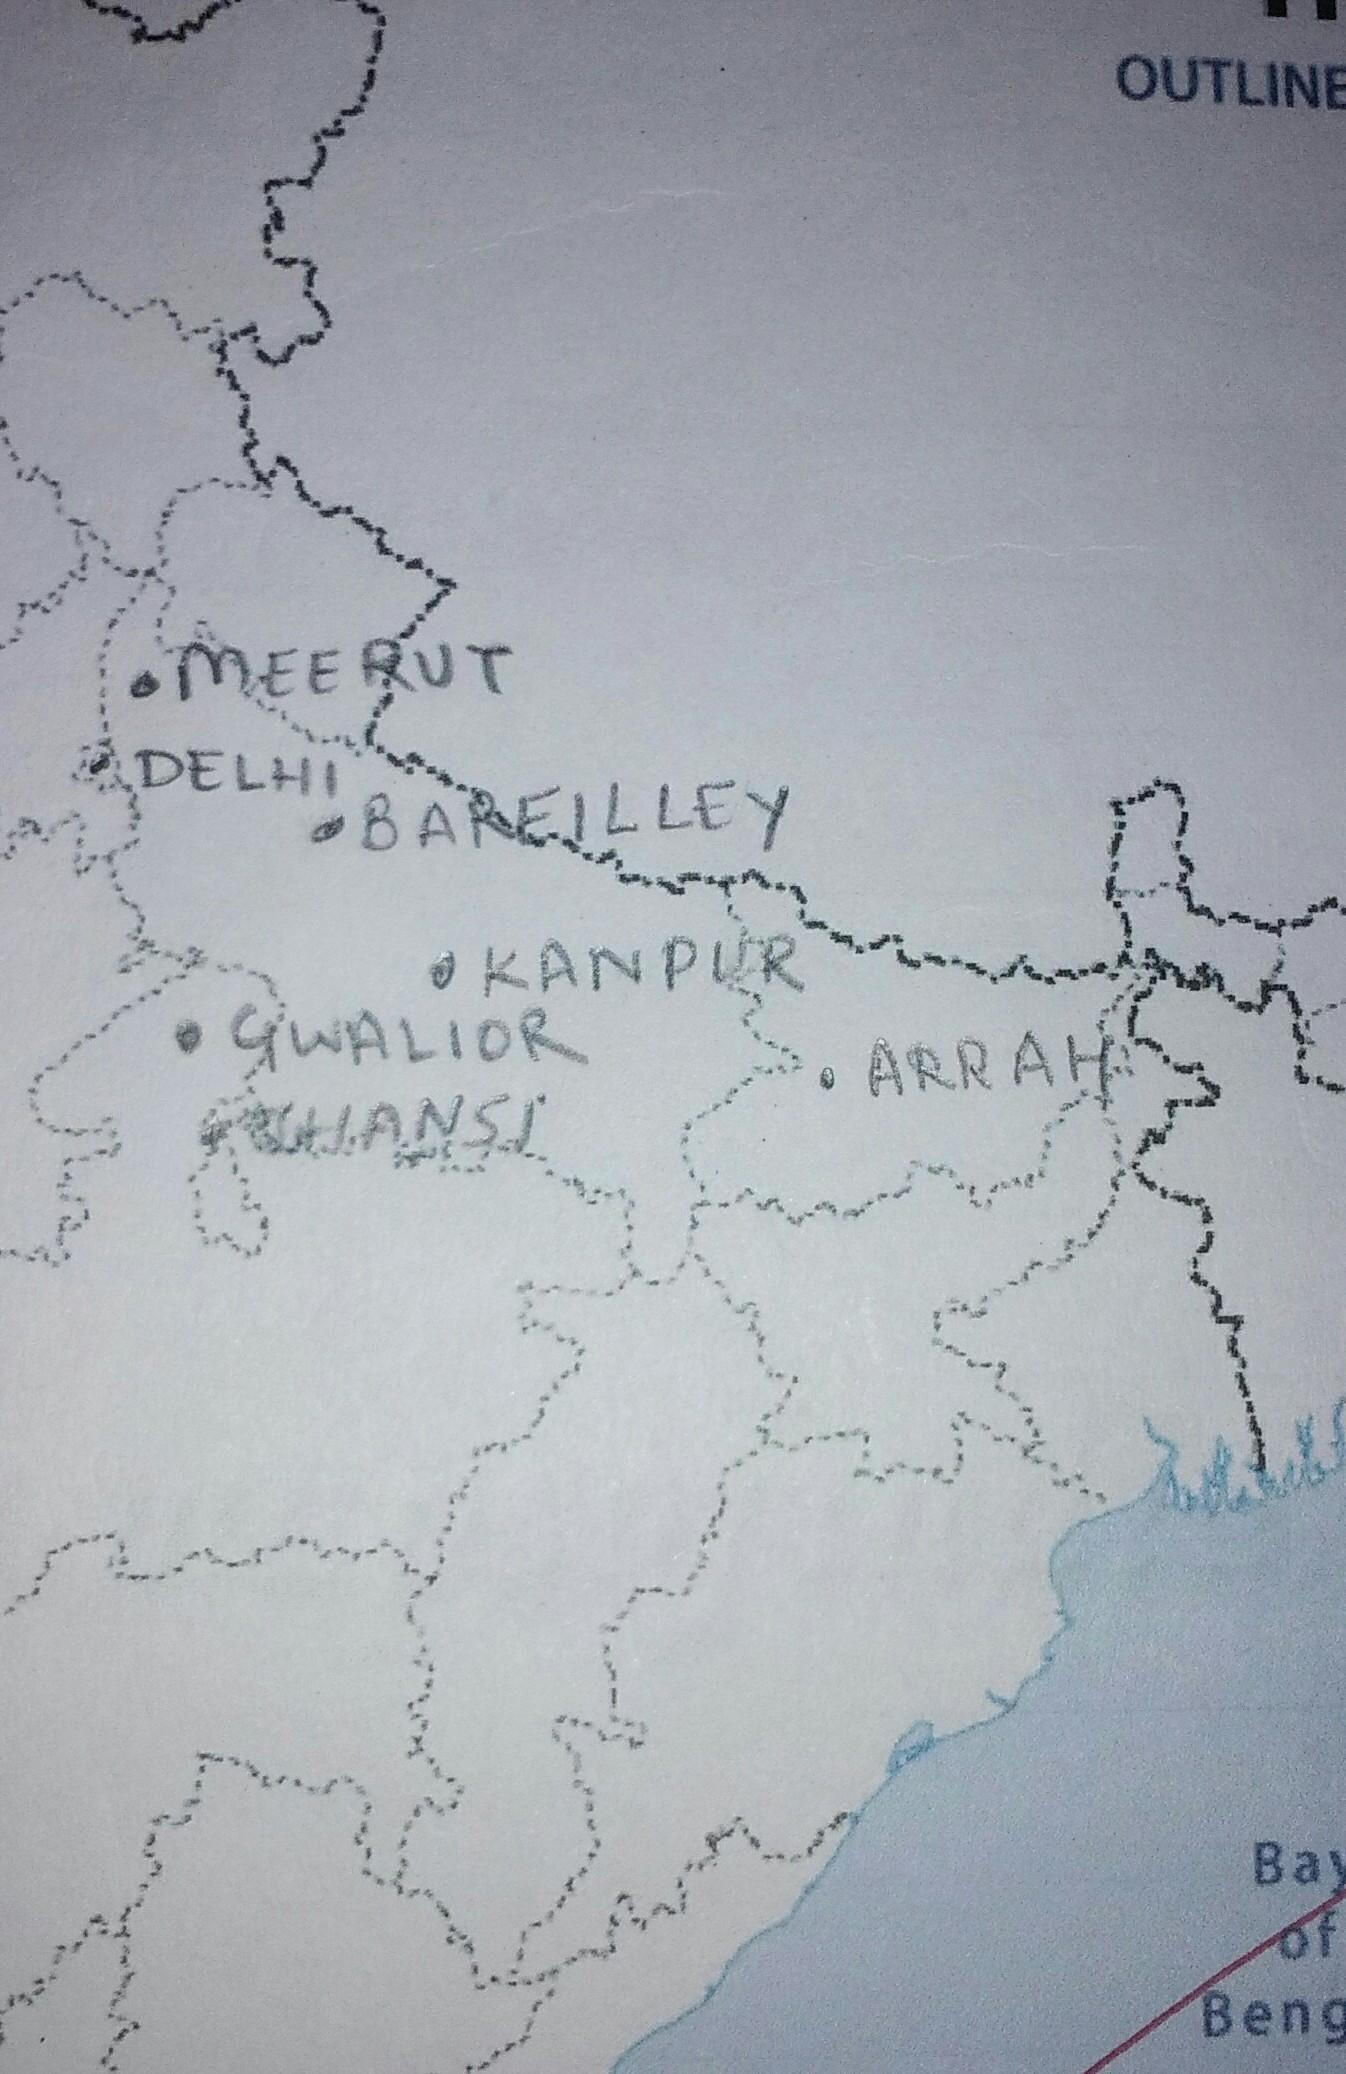 political gwalior in india map Locate Following States On India Political Brainly In political gwalior in india map